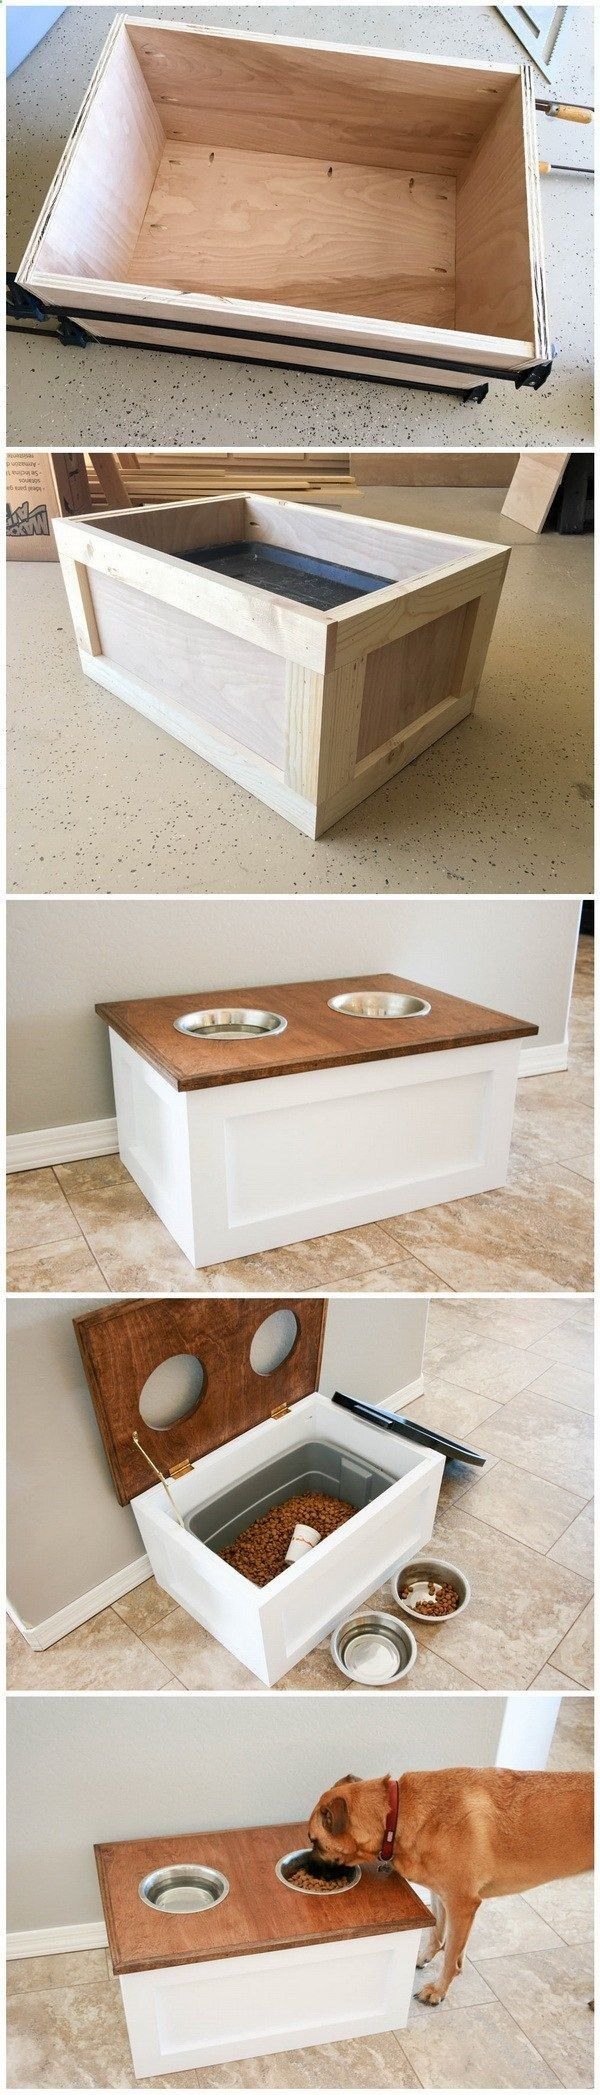 Plans Of Woodworking Diy Projects Diy Dog Food Station